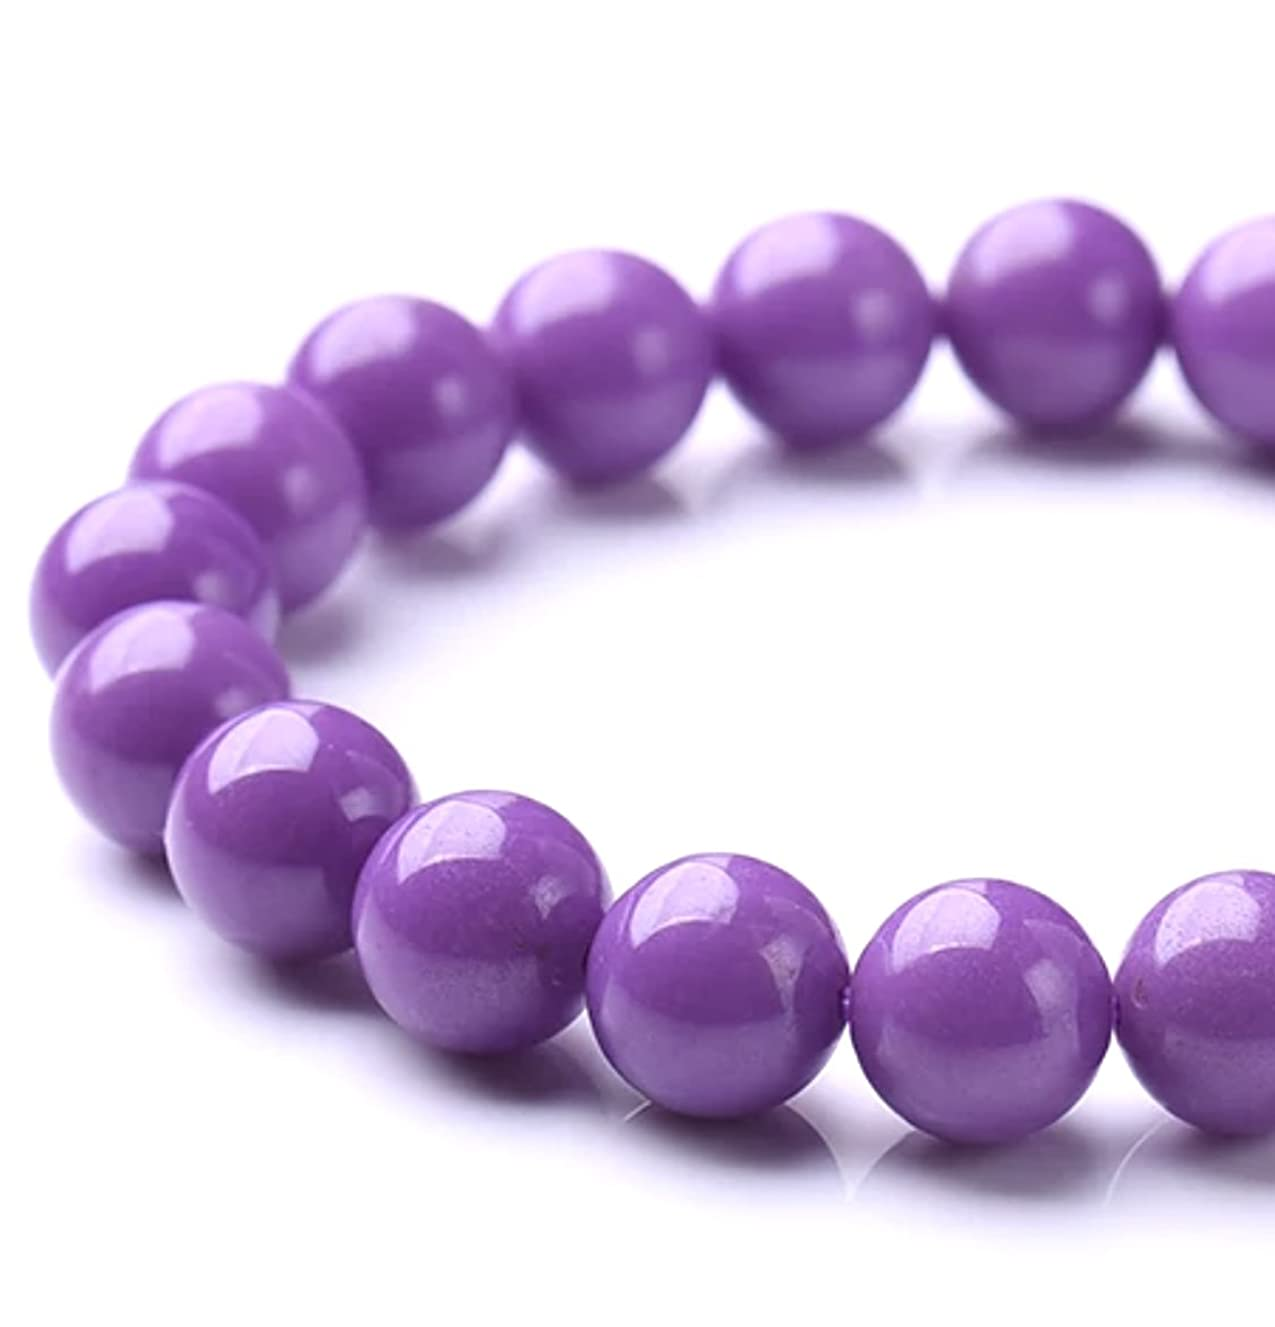 [ABCgems] Rare American Purple Phosphosiderite (Combination of Phosphorus and Iron- Grade AAA) Tiny 4mm Smooth Round Beads for Beading & Jewelry Making